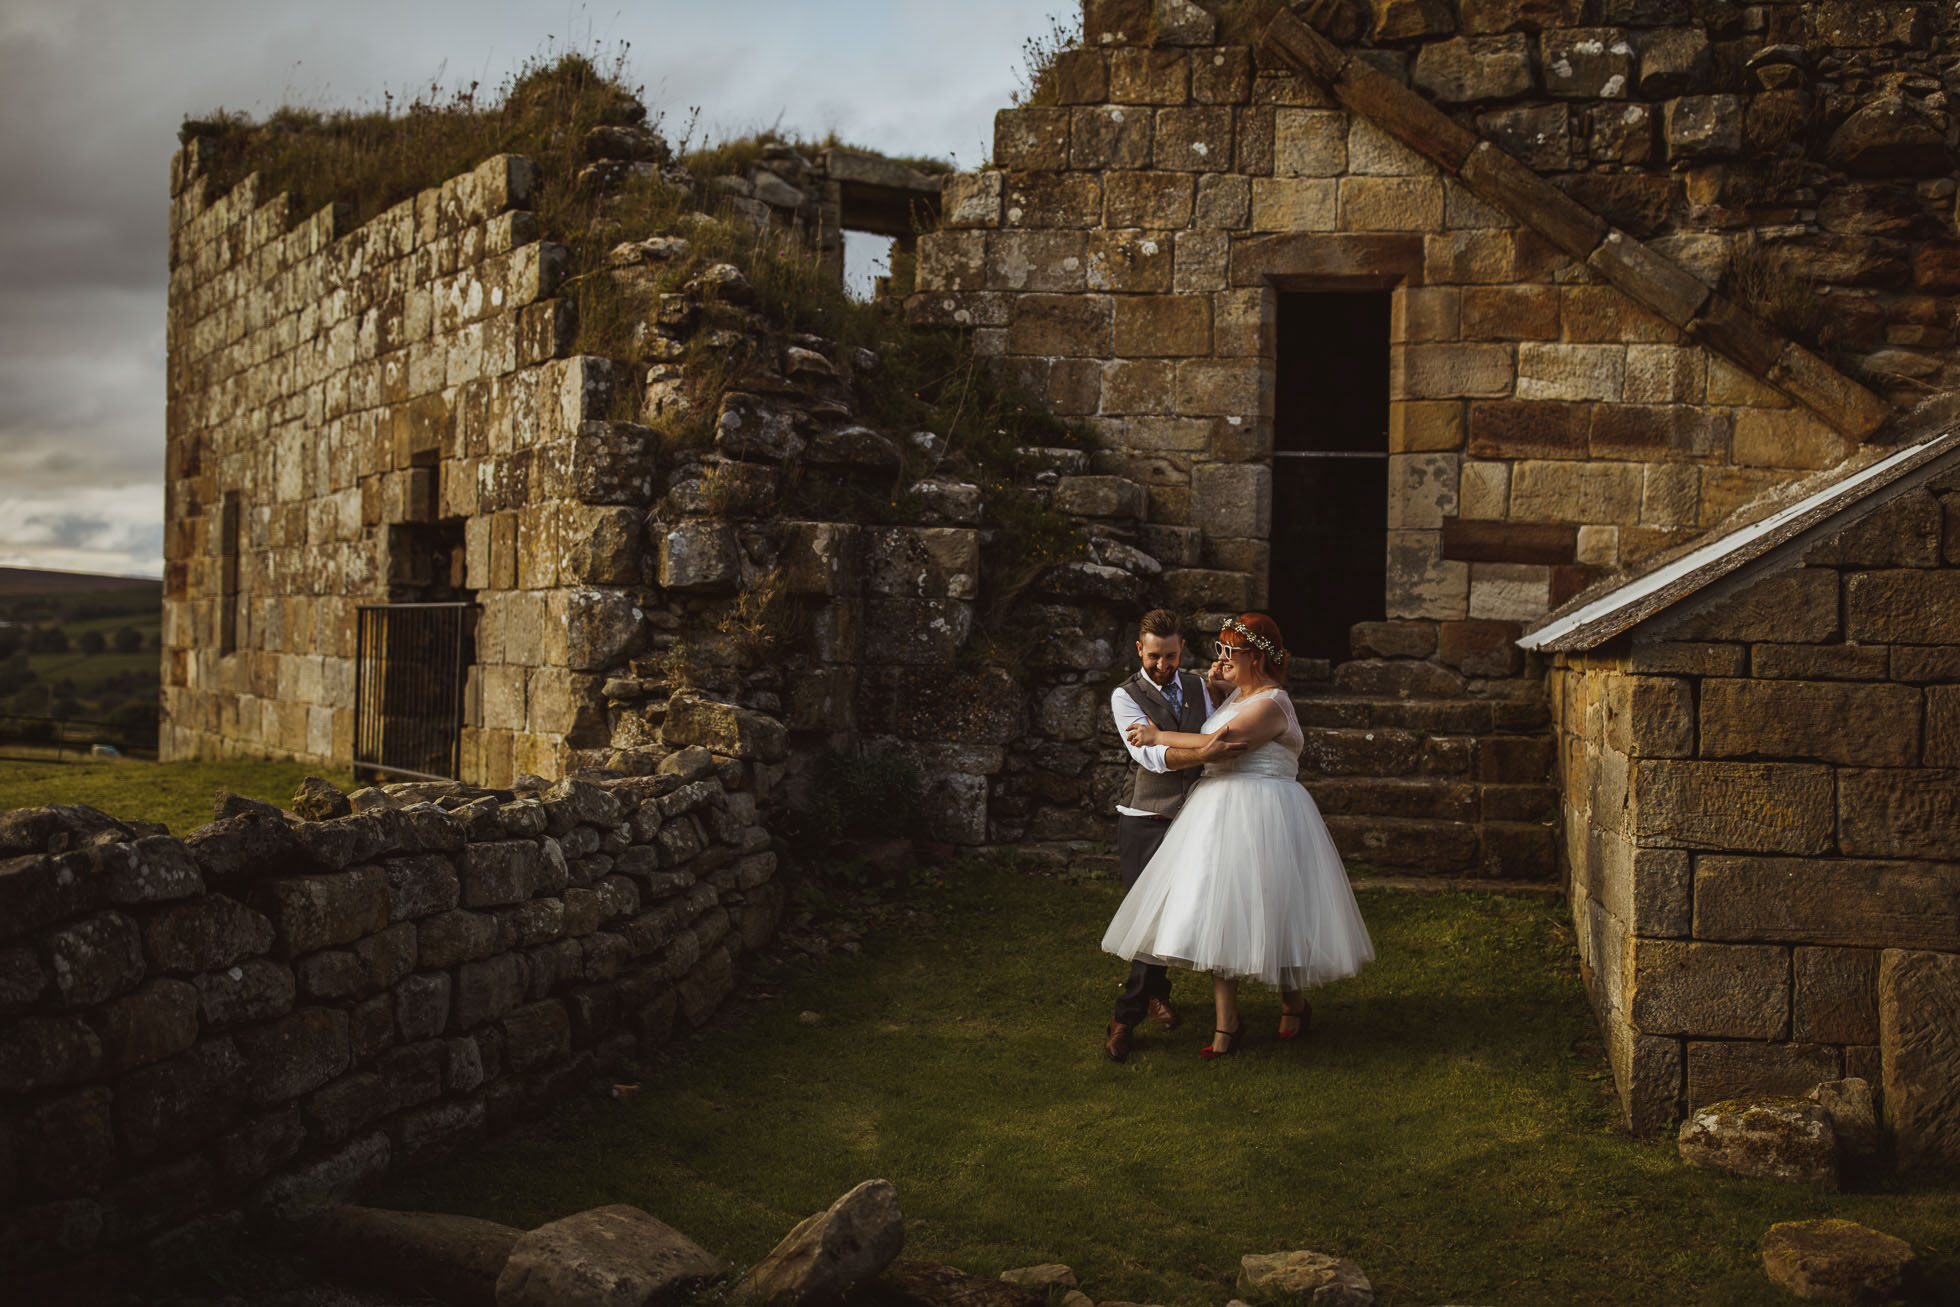 danby_castle_wedding_photographer-106.jpg